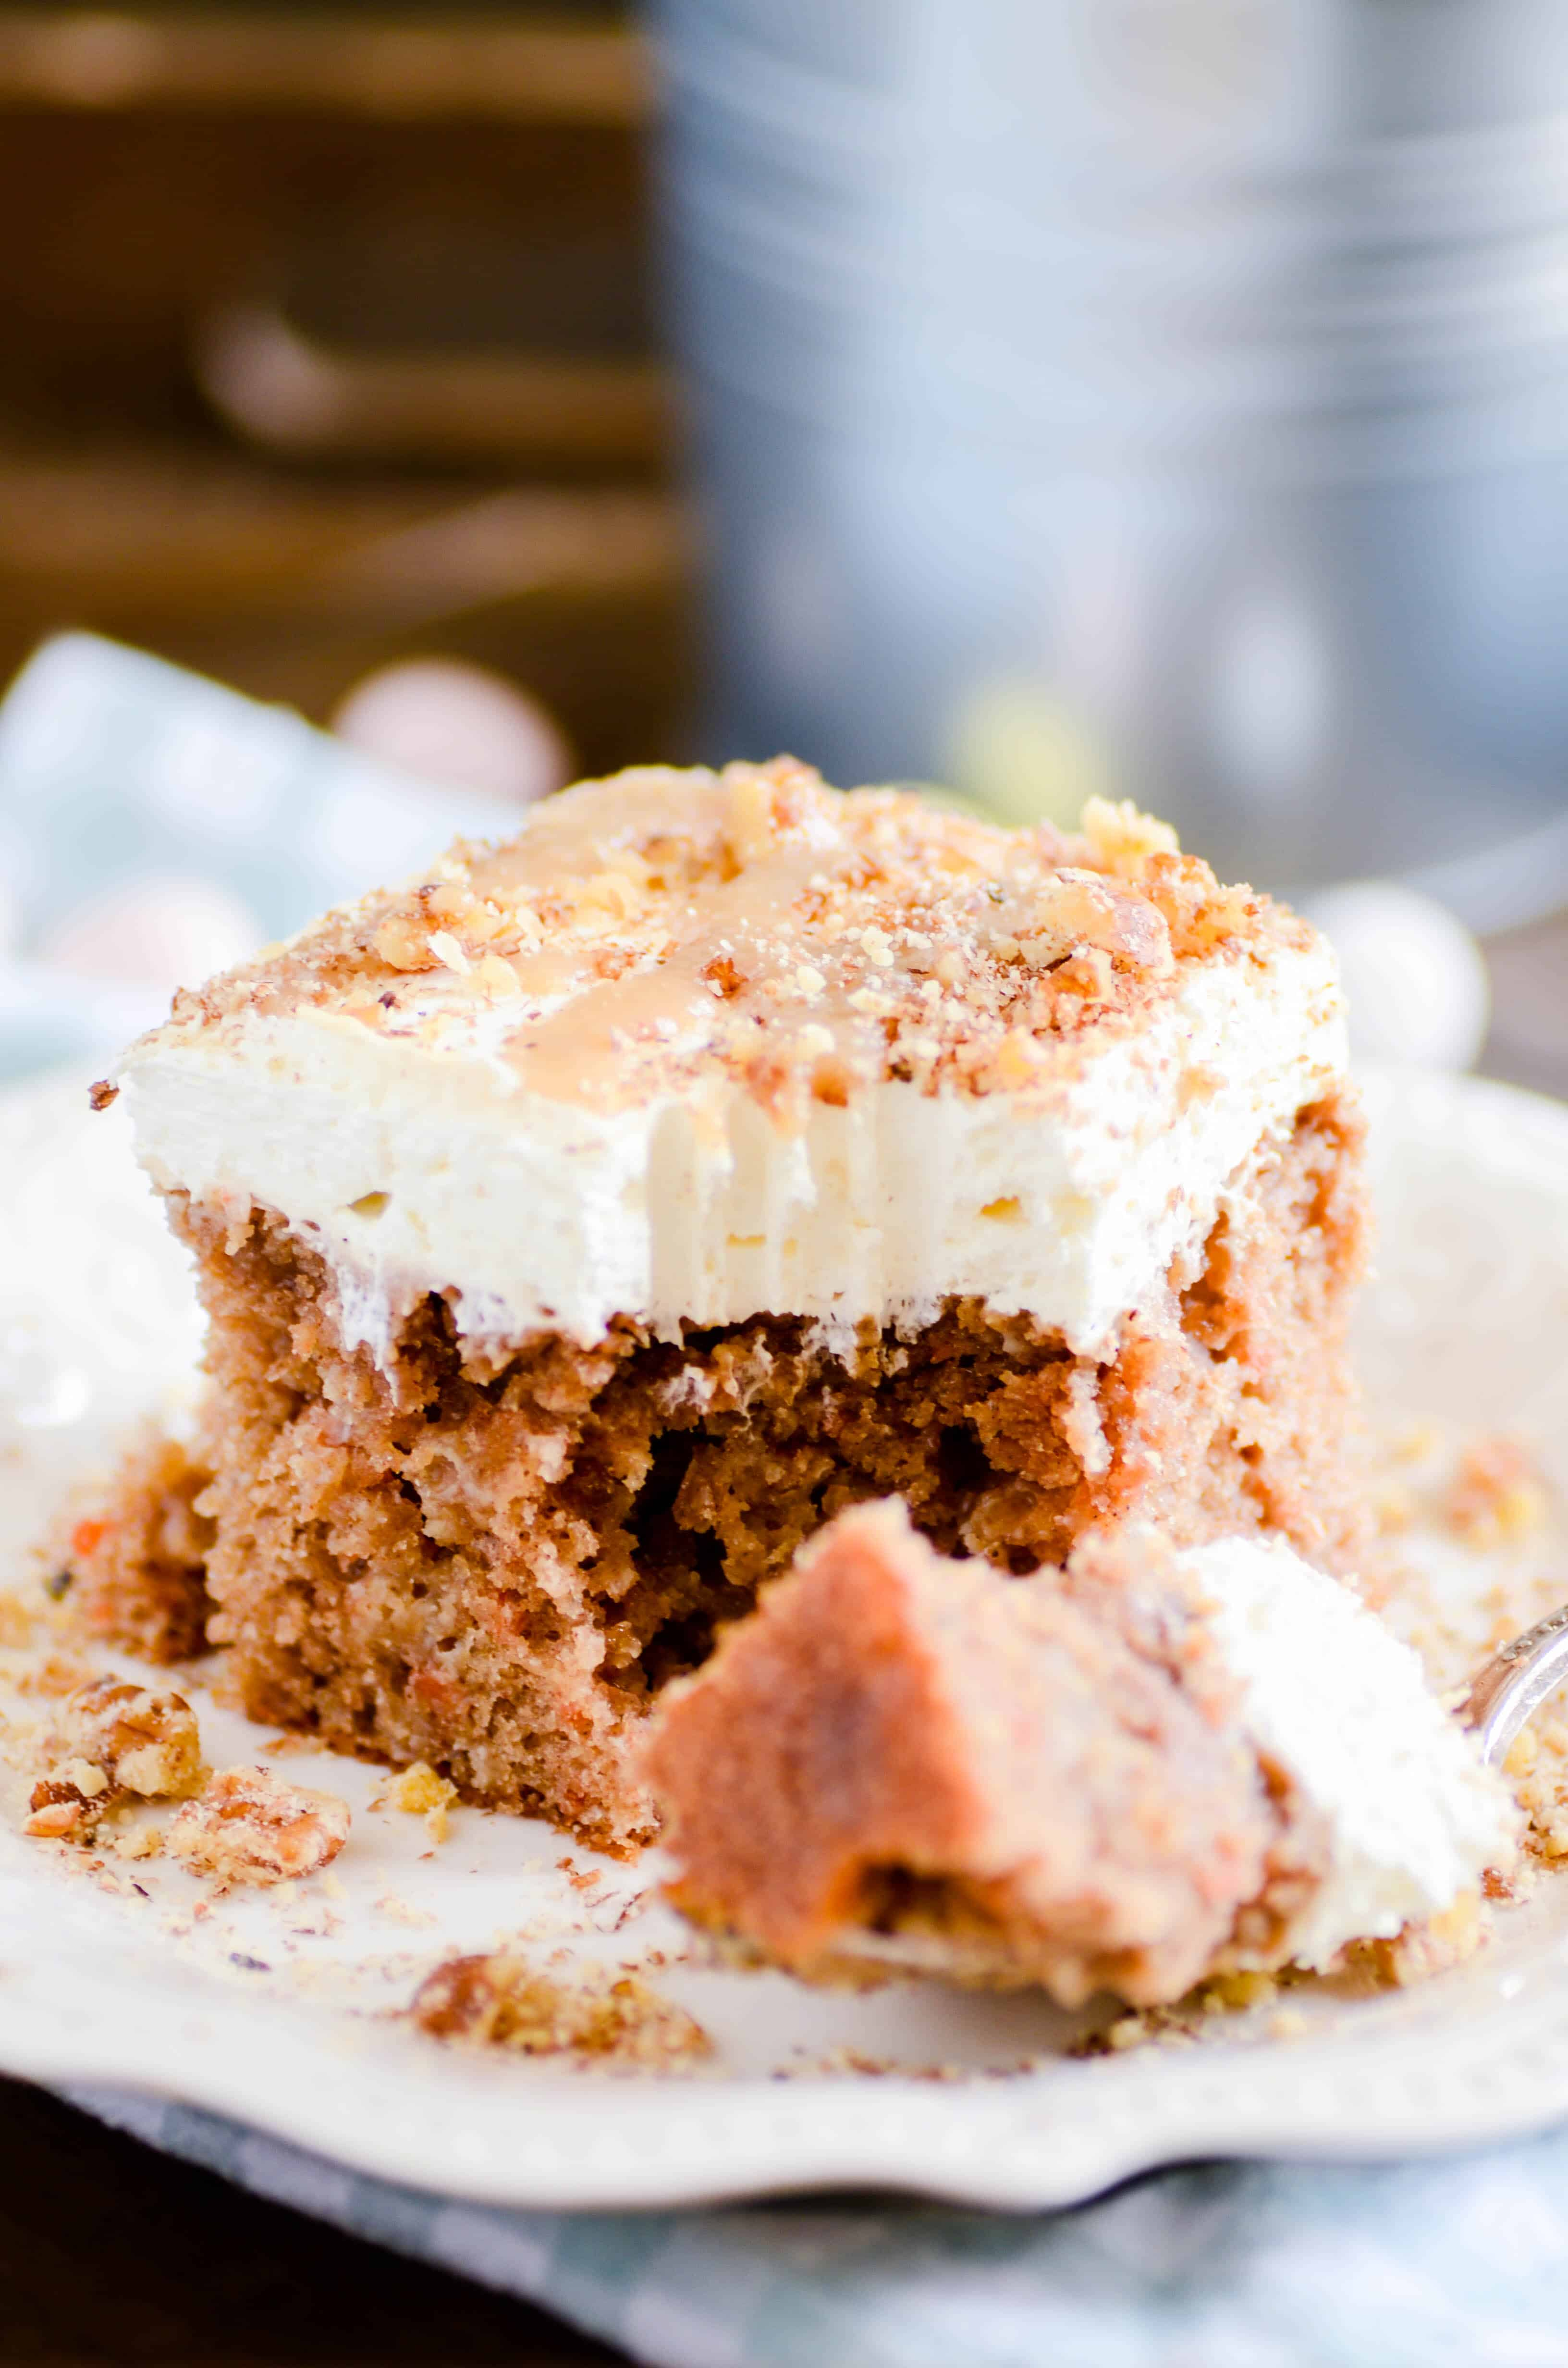 Carrot cake soaked in a homemade caramel sauce topped with a cream cheese whipped topping. This is an Easter show stopper!